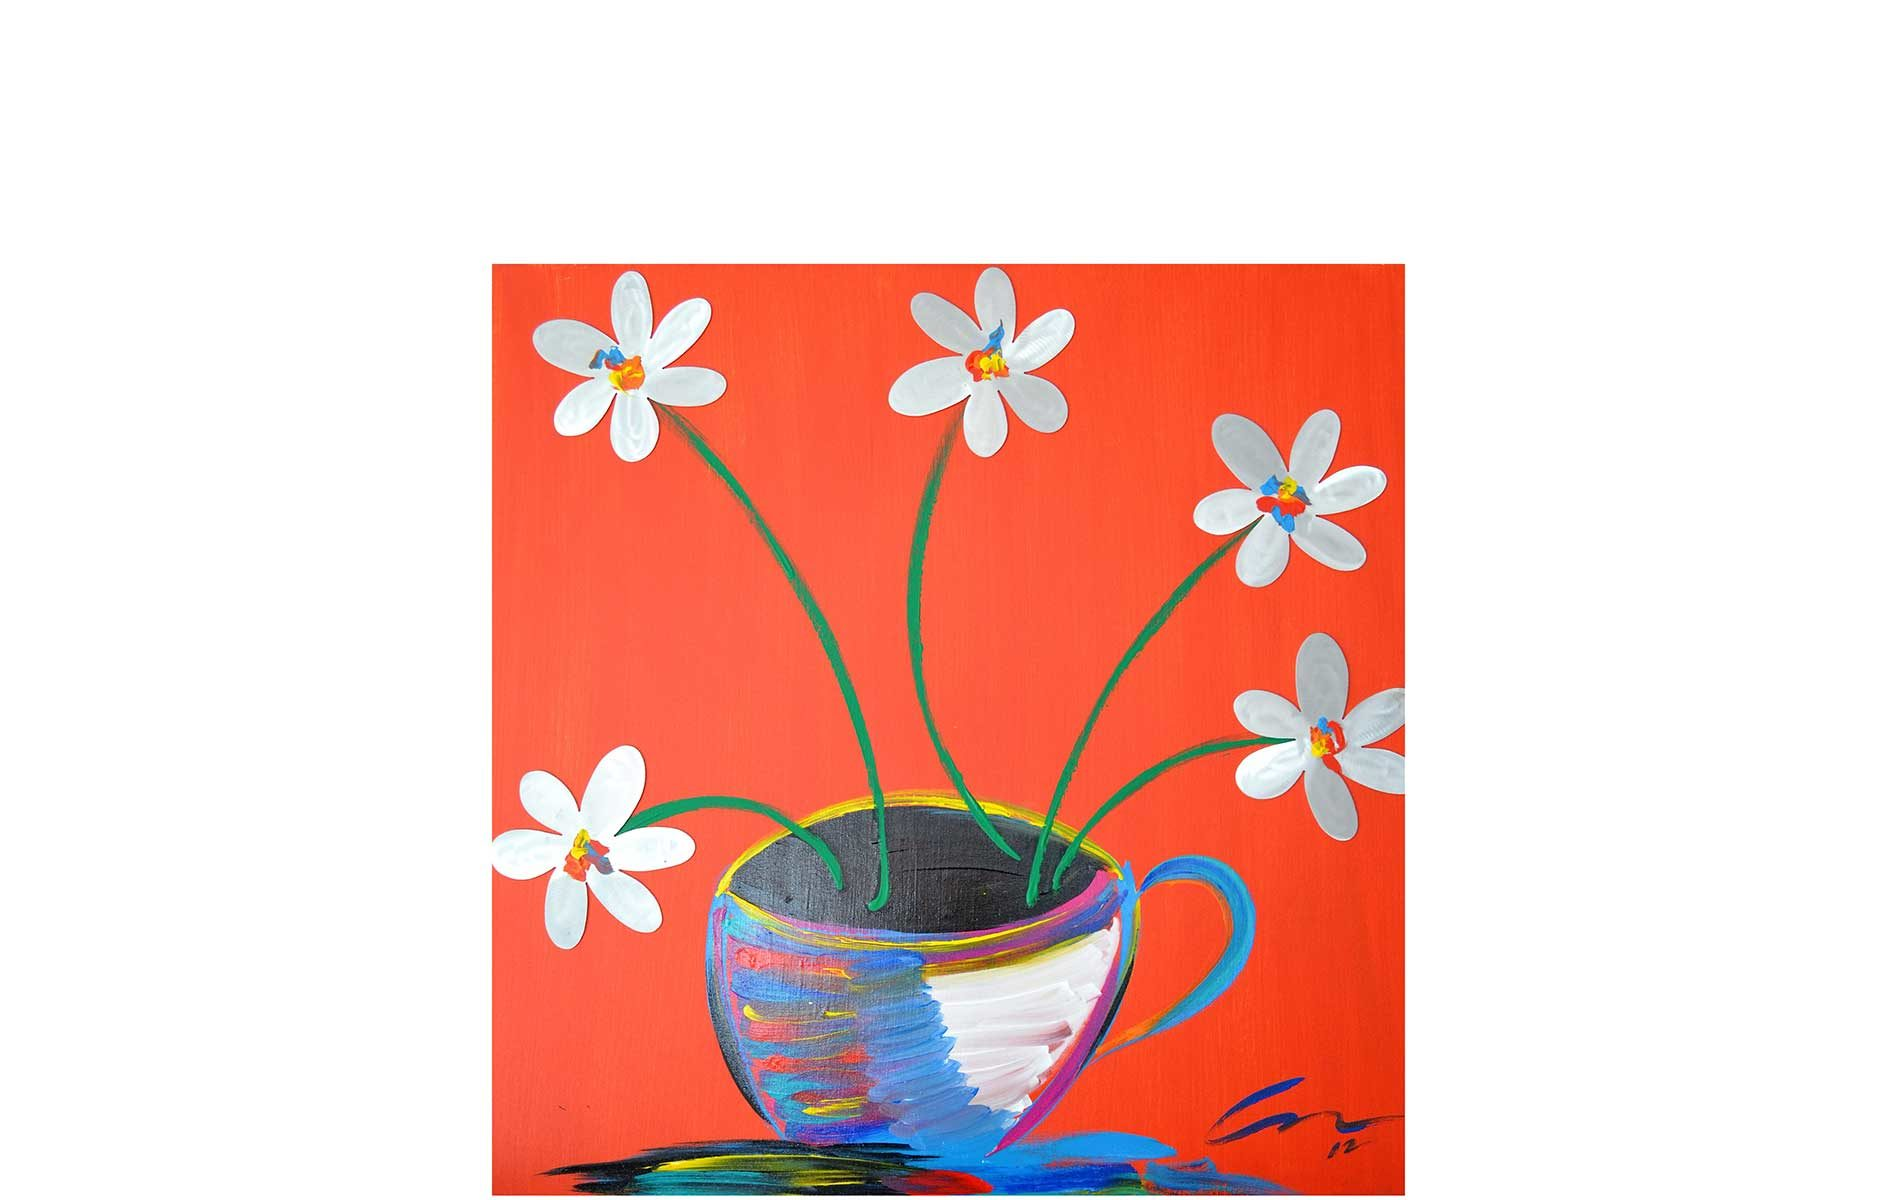 Image of a painting depicting a multiple colored mug holding white flowers with multi-colored centers on a background of red.